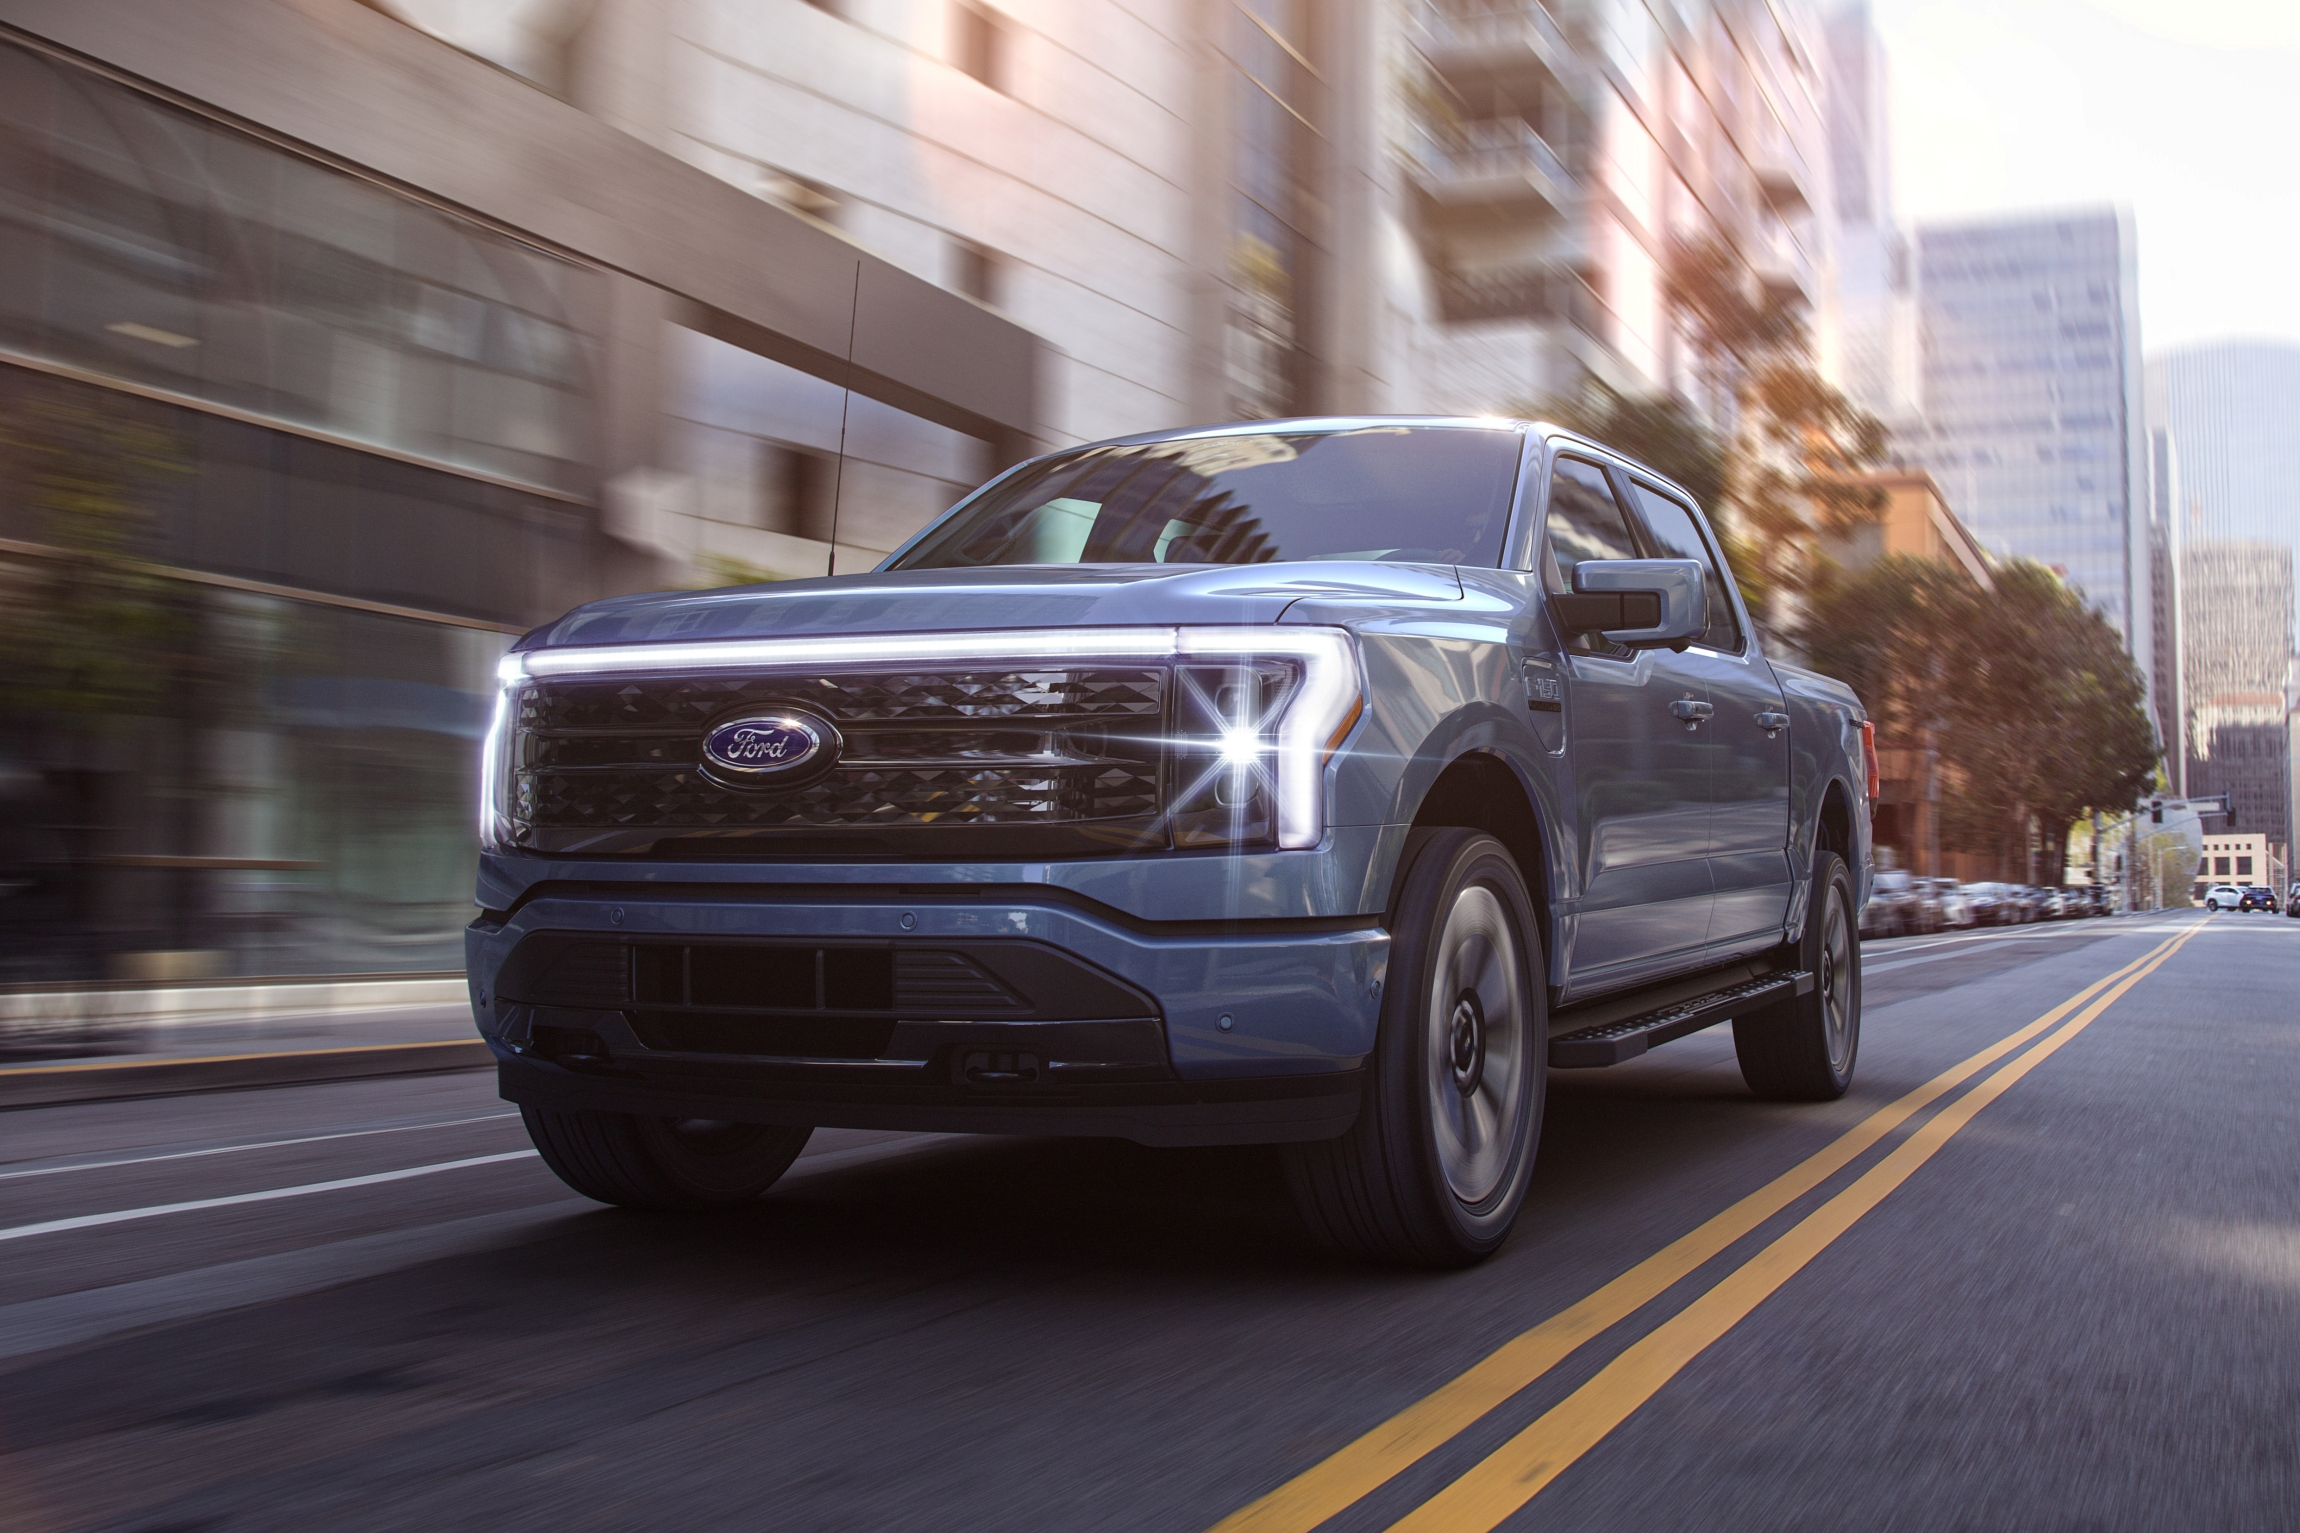 2022 Ford F-150 Lightning Platinum. Pre-production model with available features shown. Available starting spring 2022.